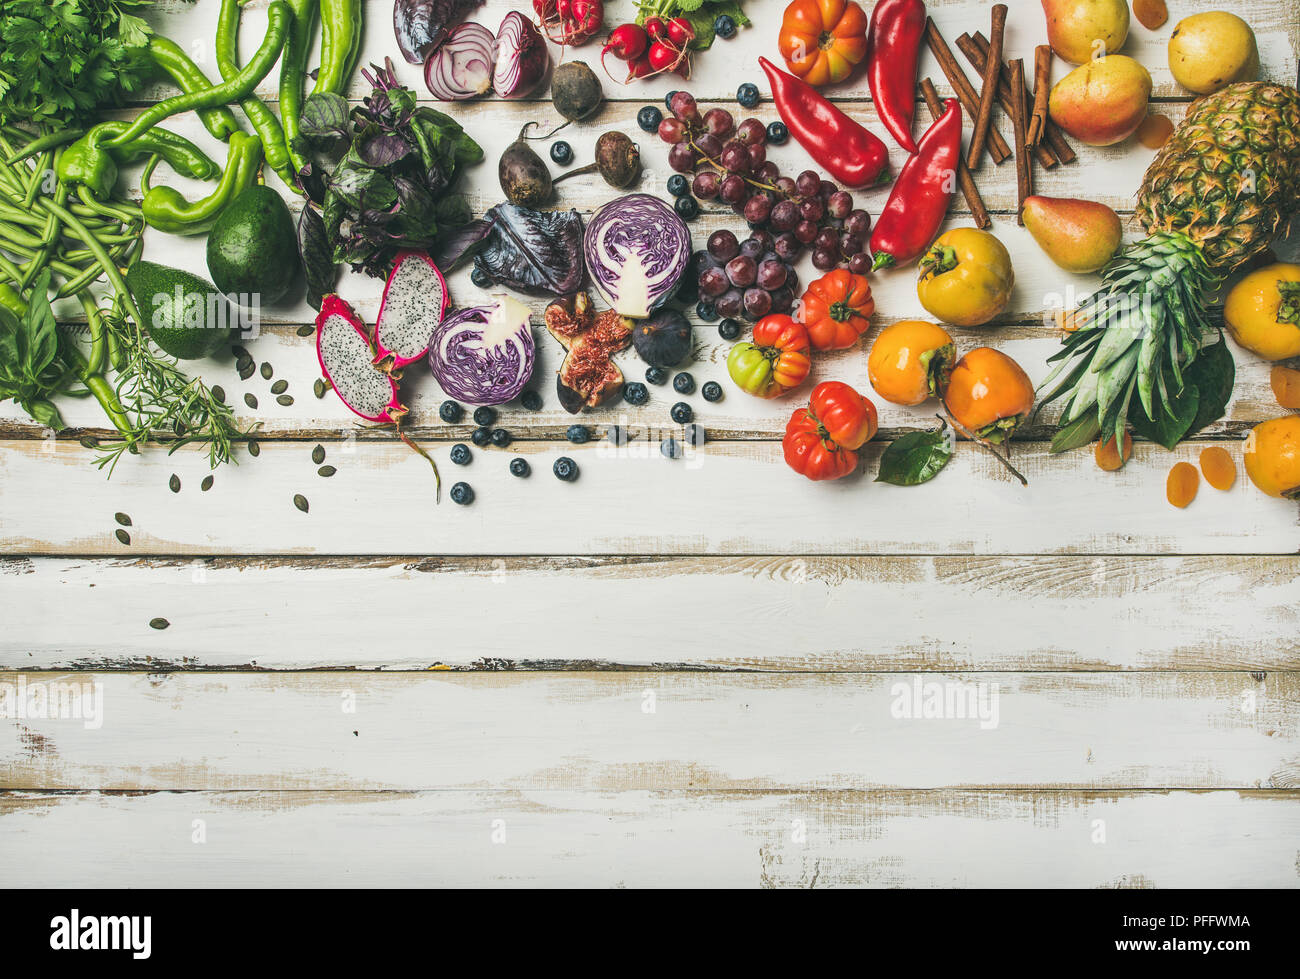 Helathy raw vegan food cooking background. Flat-lay of fresh fruit, vegetables, greens and superfoods over white wooden table, top view, copy space. C - Stock Image